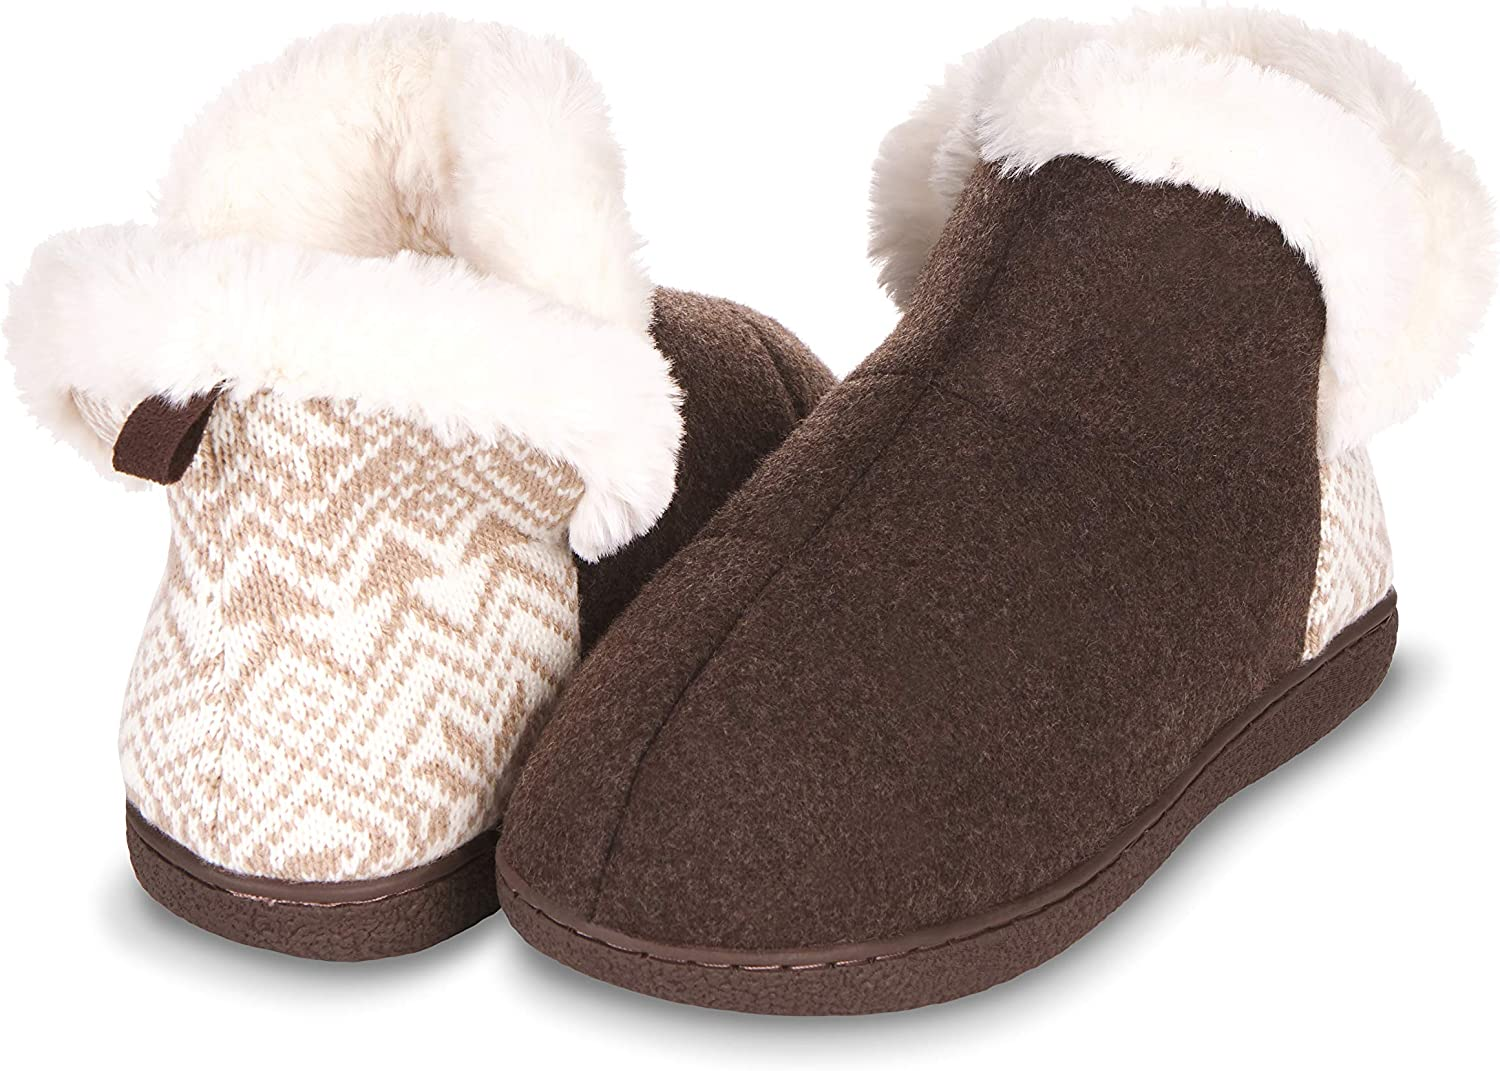 Floopi Indoor, Outdoor Slippers for Women- Fur Lined House Booties, Ankle High, Closed-Back Cut- Triple Memory Foam Insole, Warm, Fuzzy Faux Fur Lining, Rubber Outsole-Slip-ons